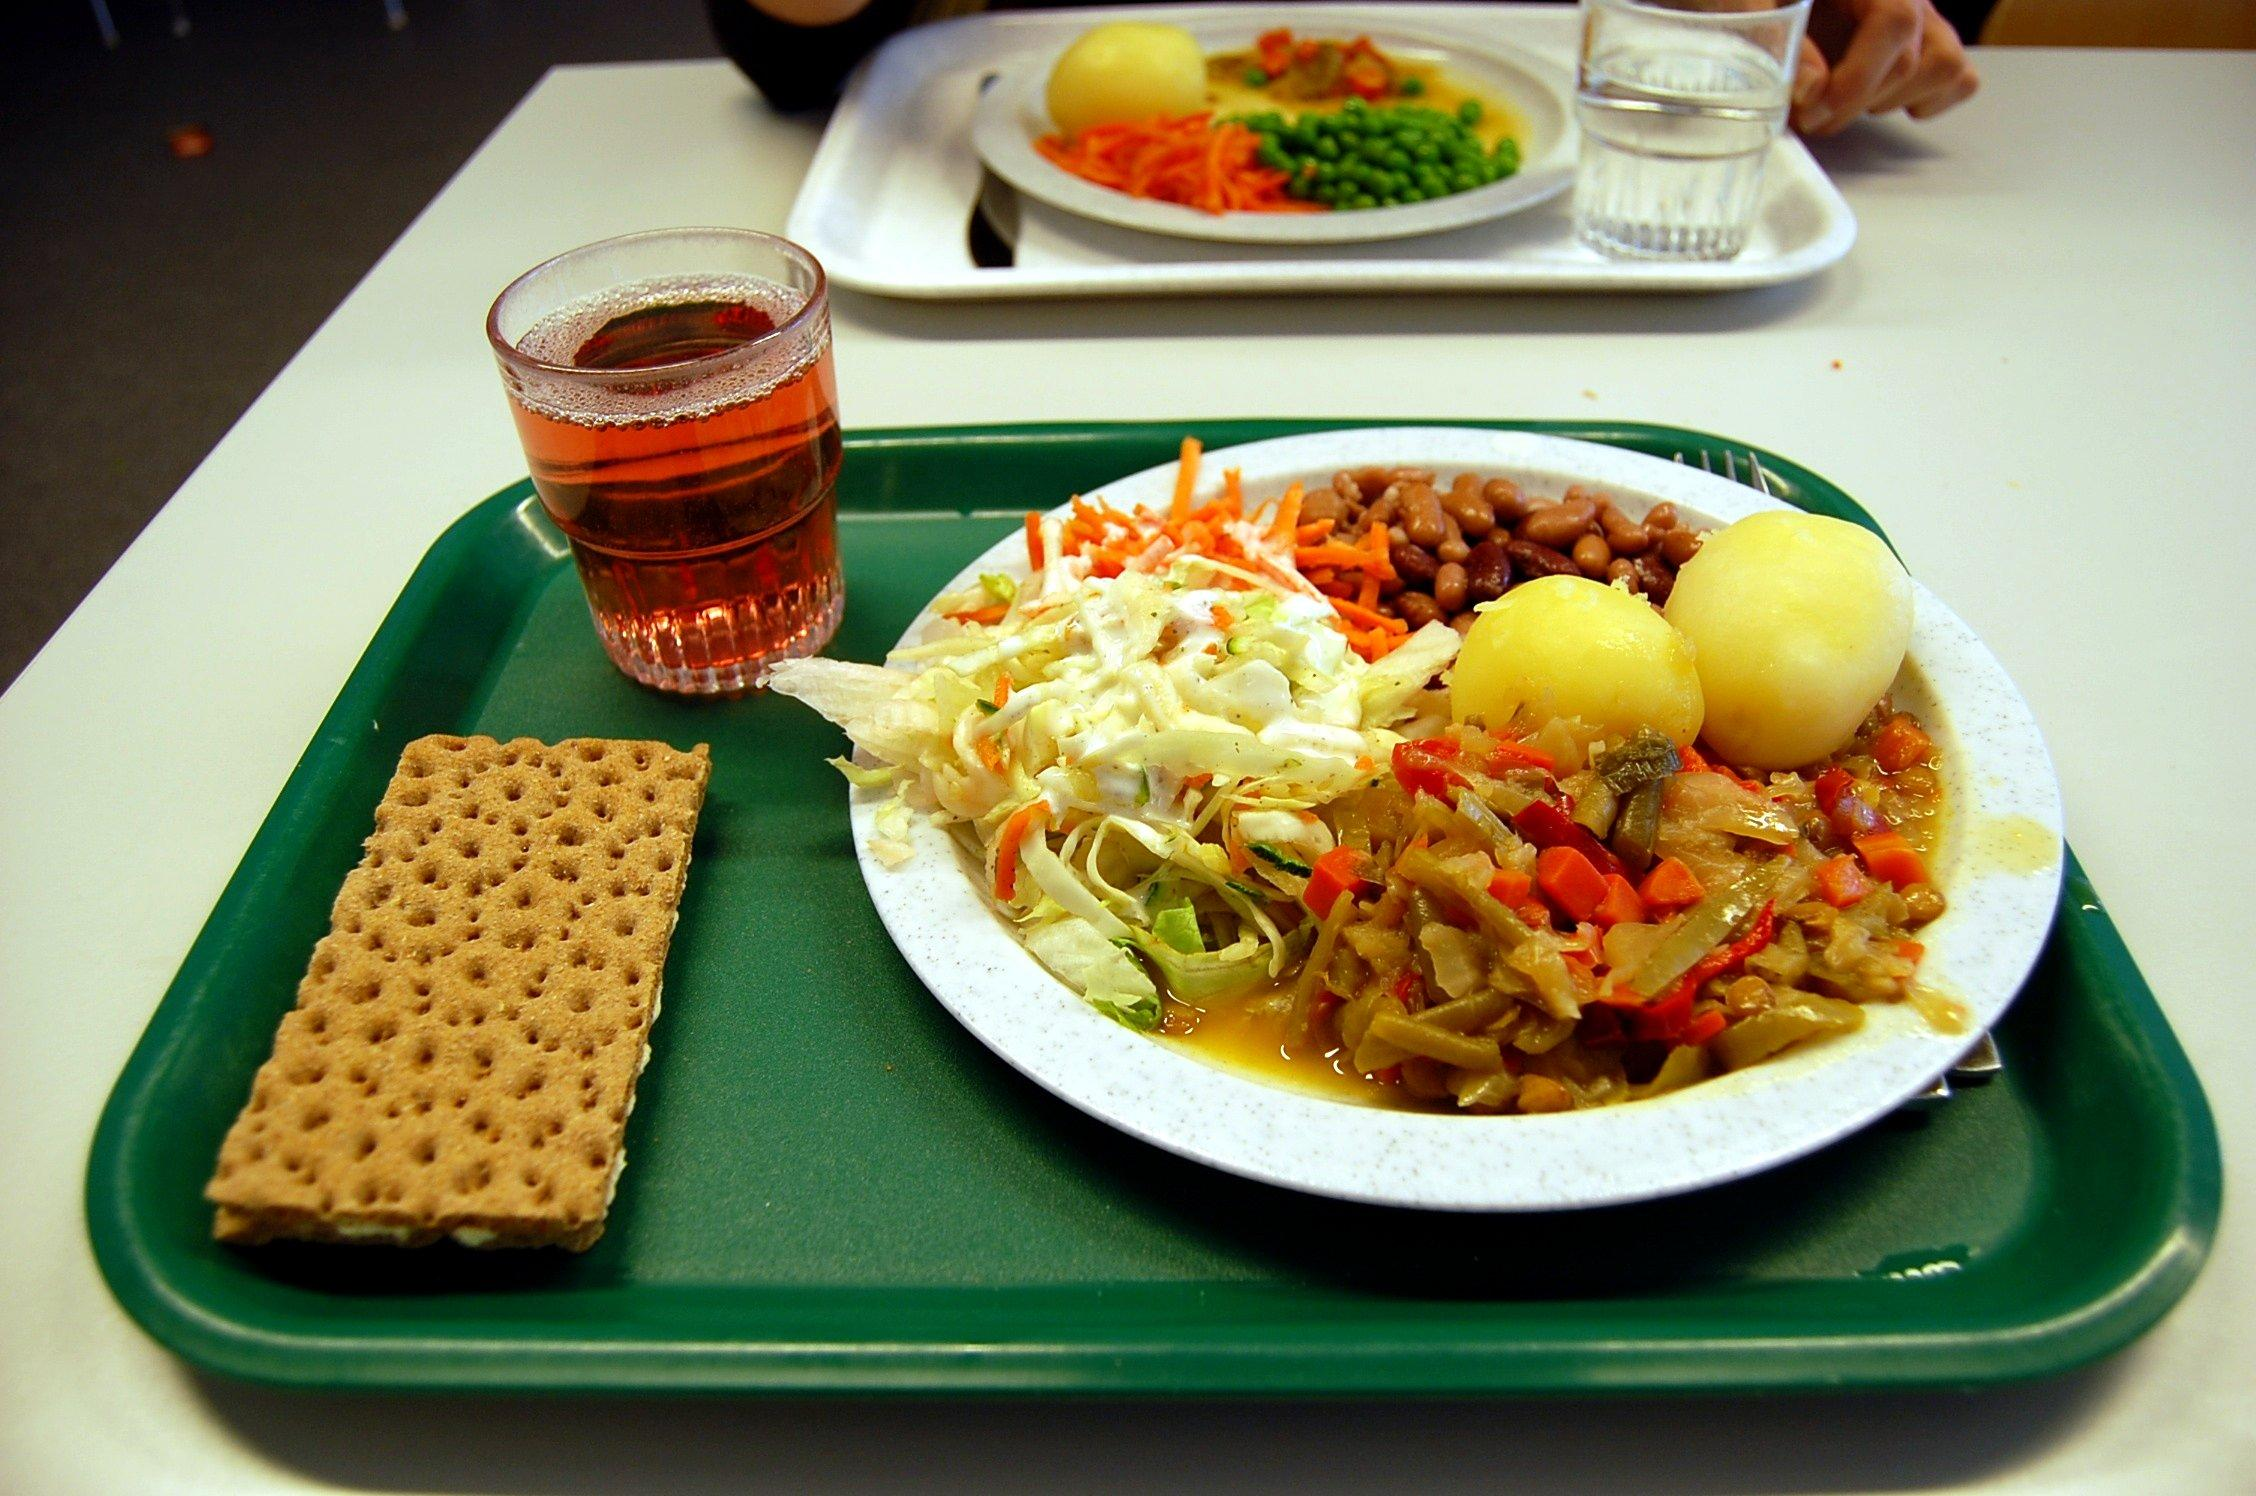 This is how the main platter at a school in Sweden looks like. The school always has a full meal. Photo courtesy of Casey Lehman.